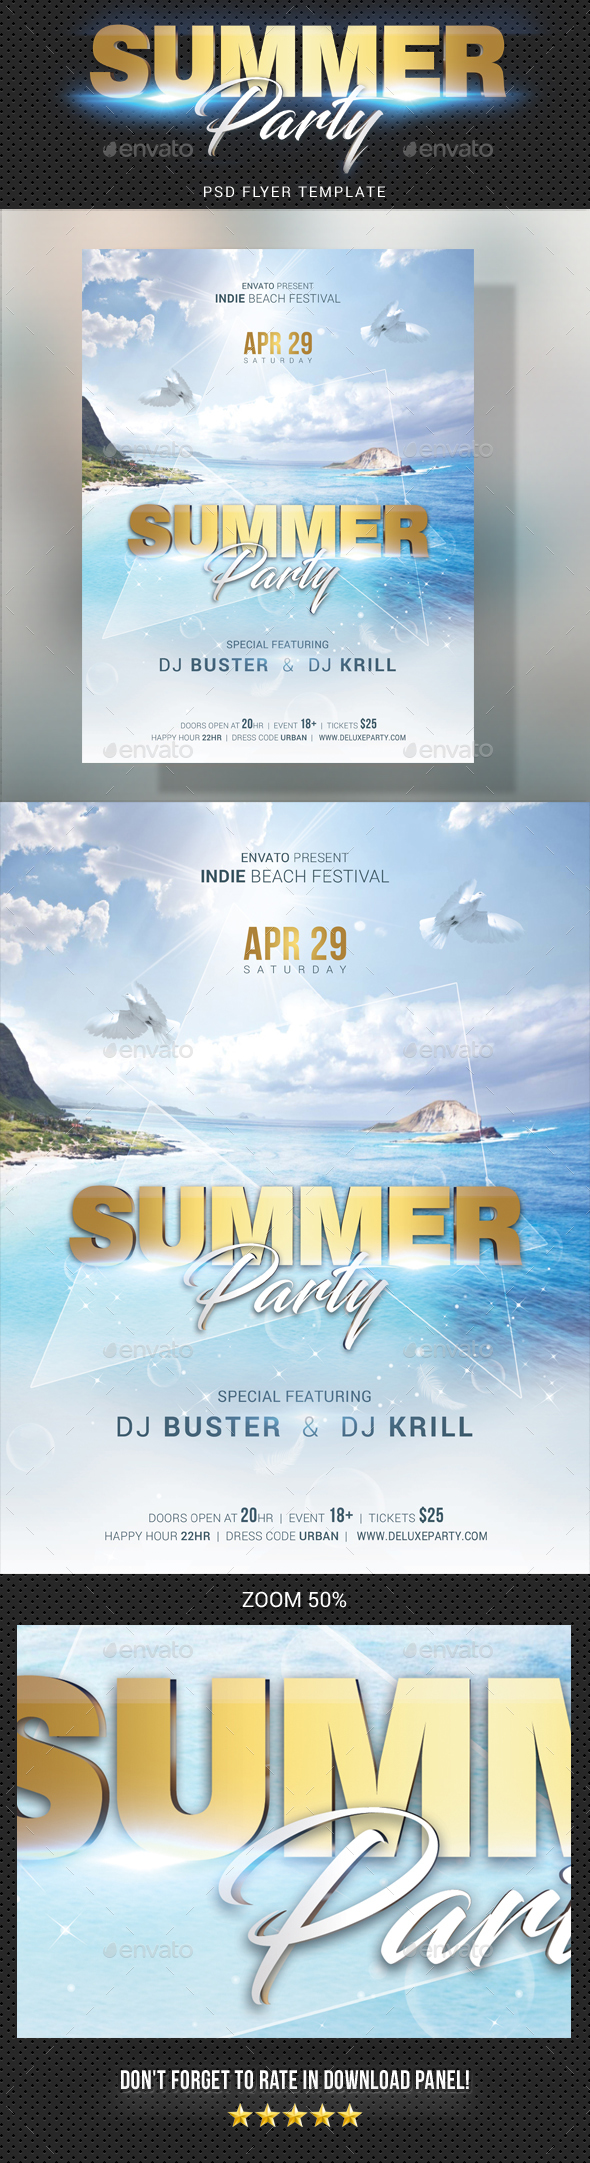 Summer Dj Party Flyer - Clubs & Parties Events